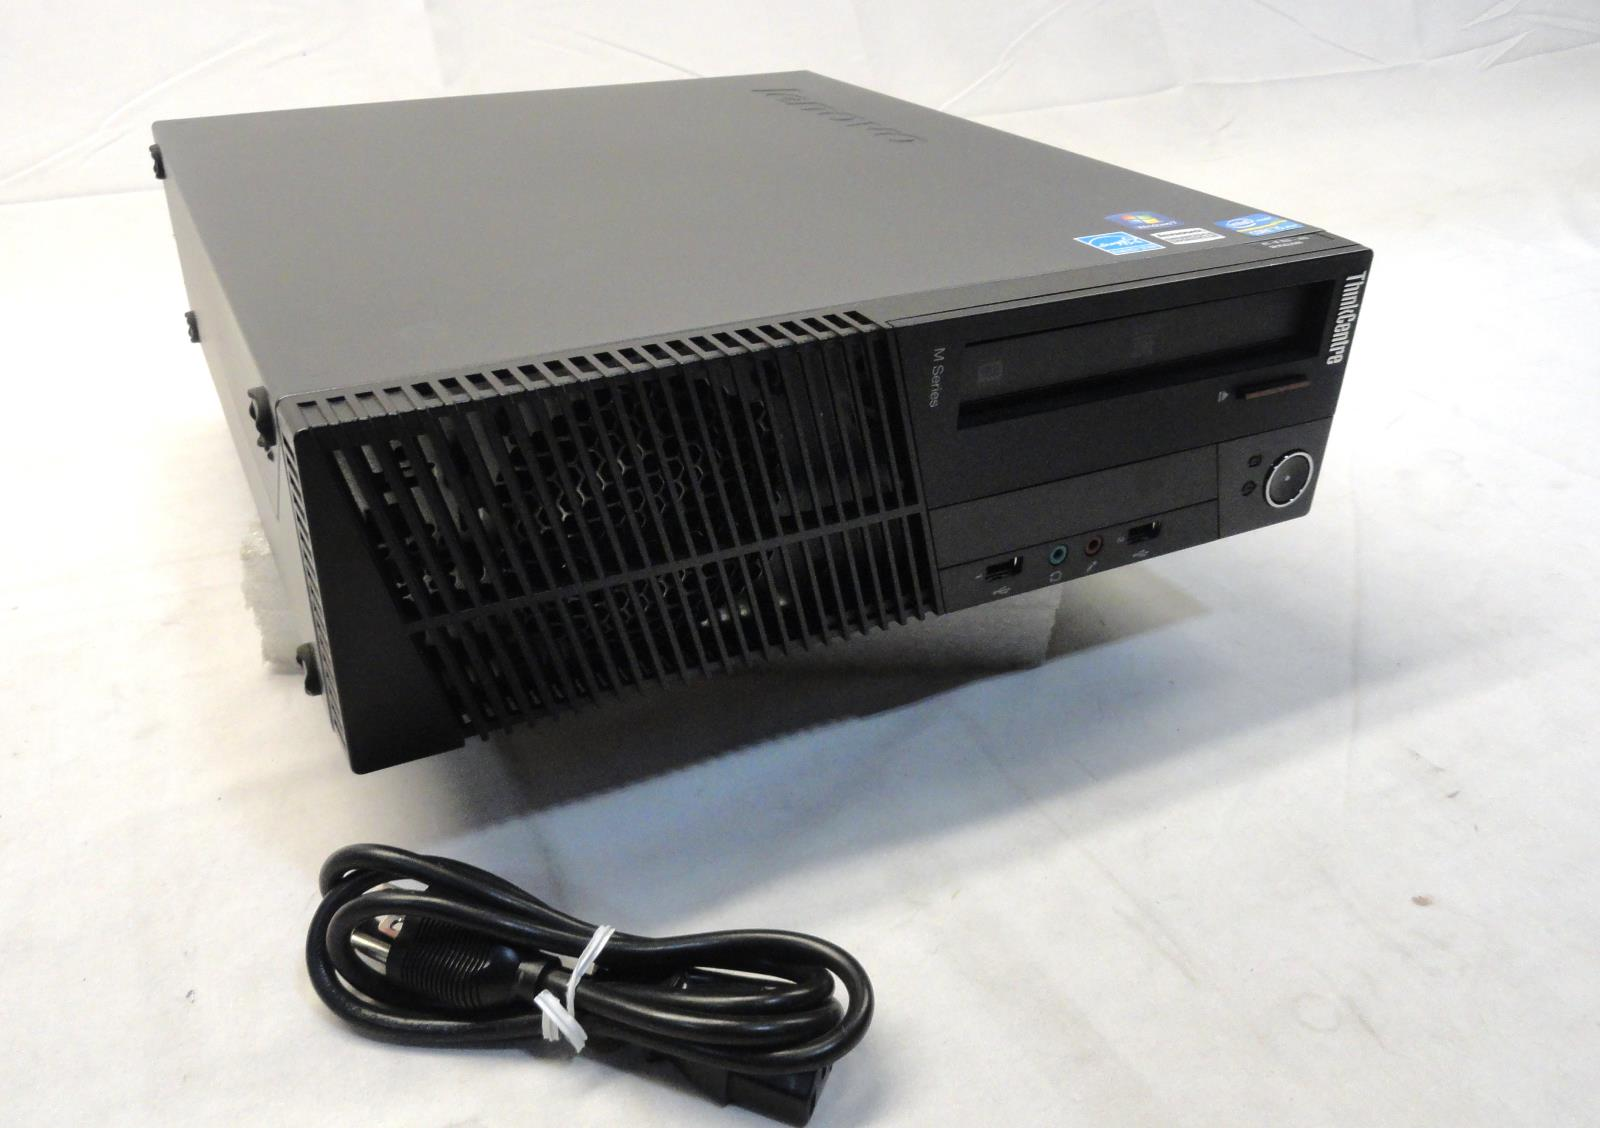 lenovo thinkcentre m series network drivers